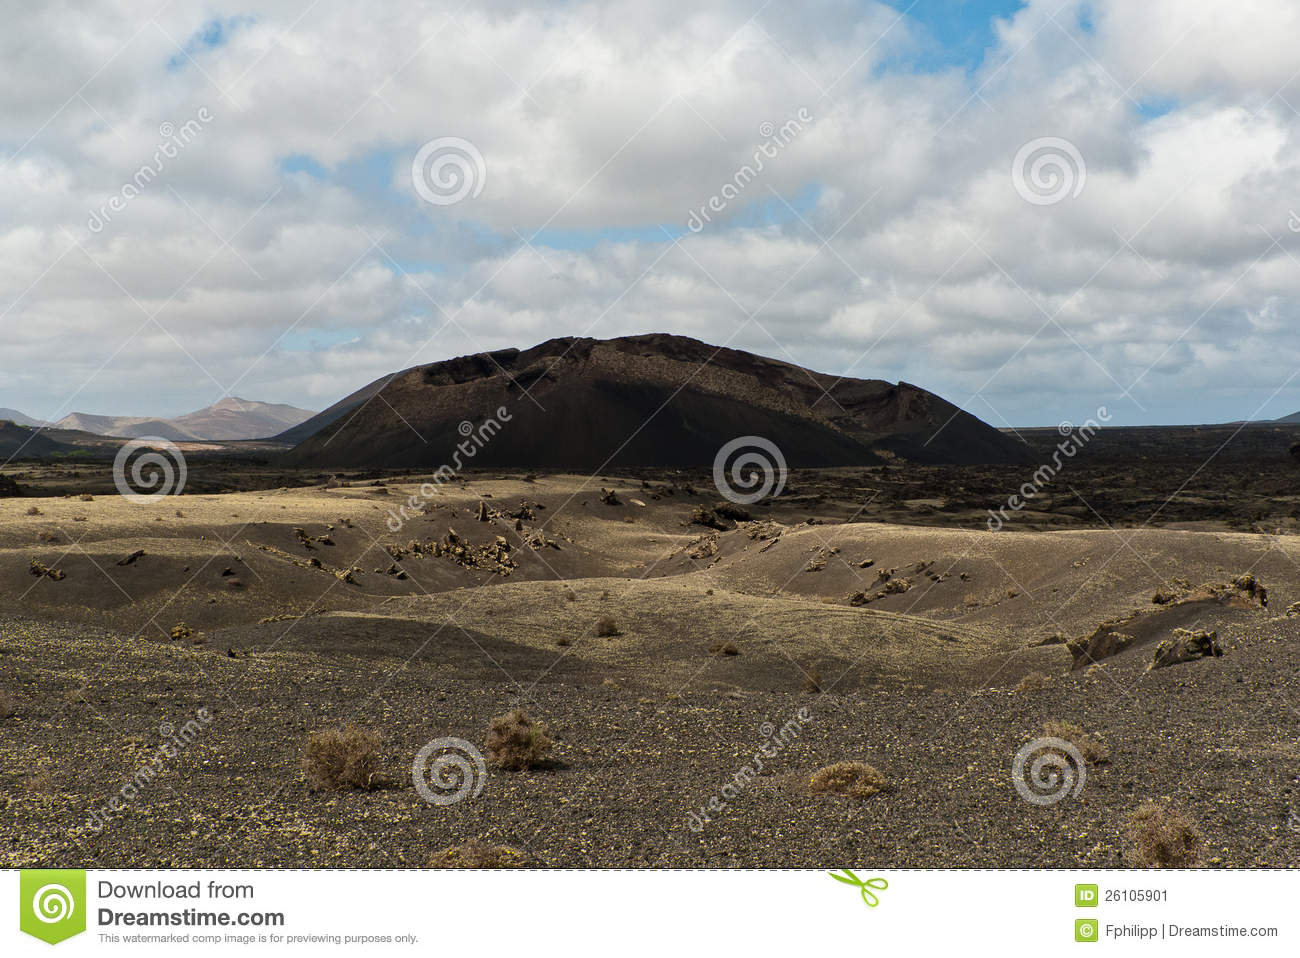 Volcanic mountains and craters on Lanzarote